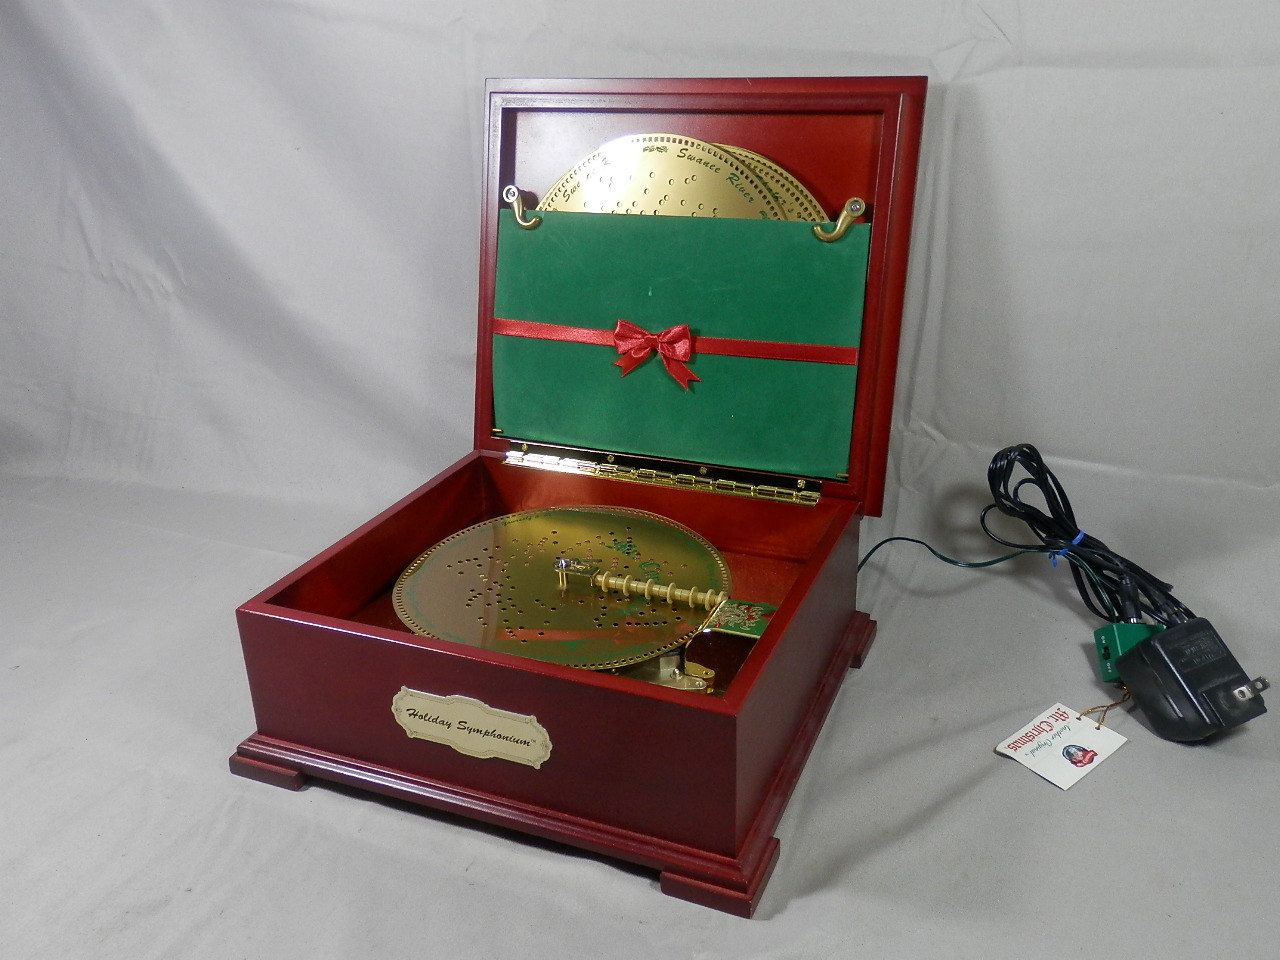 Vintage Mr. Christmas Holiday Symphonium Wooden Music Box w/16 Discs Original Cord by WesternKyRustic on Etsy